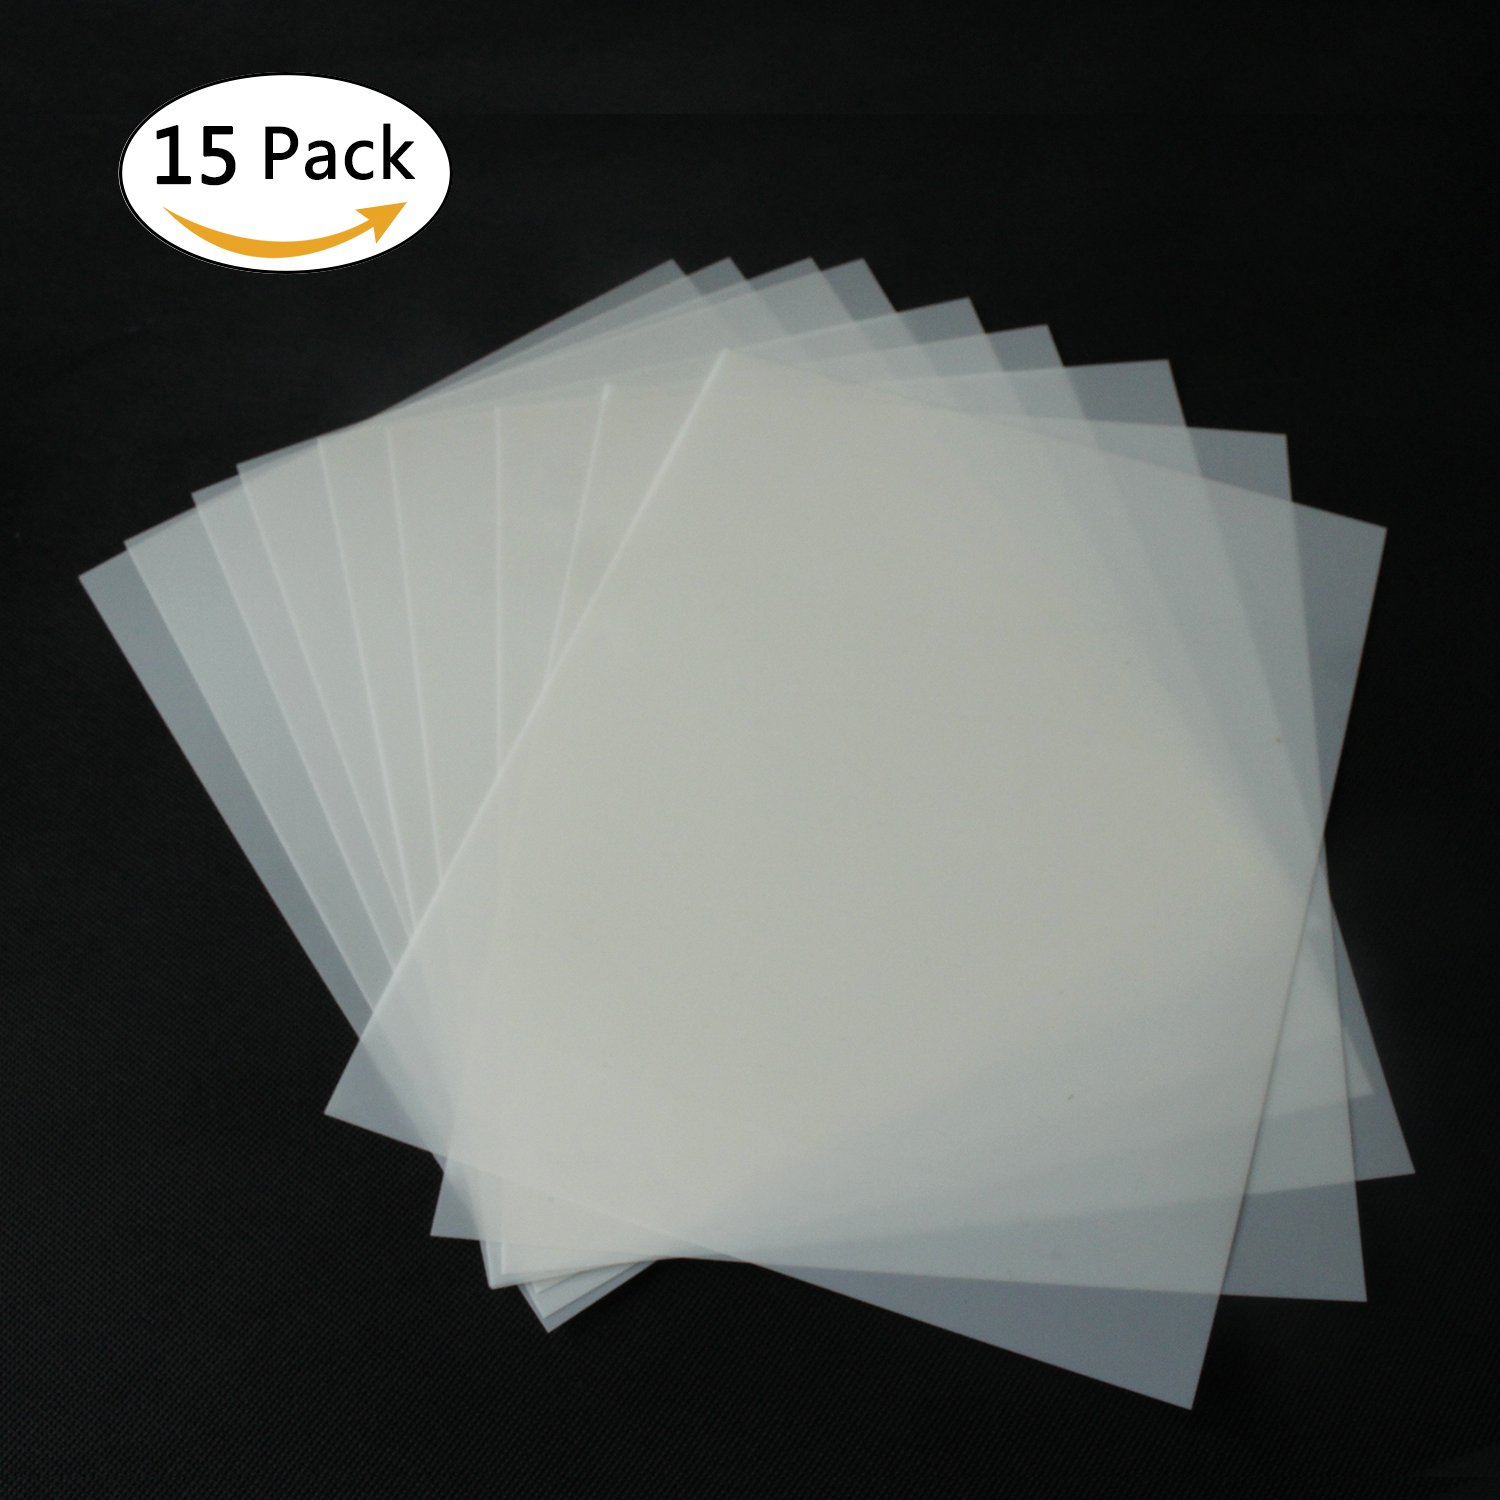 15 Pieces Blank Stencil Sheets,Square Blank Mylar Stencils, Make Your Own Stencils,8.5 x 11 inch